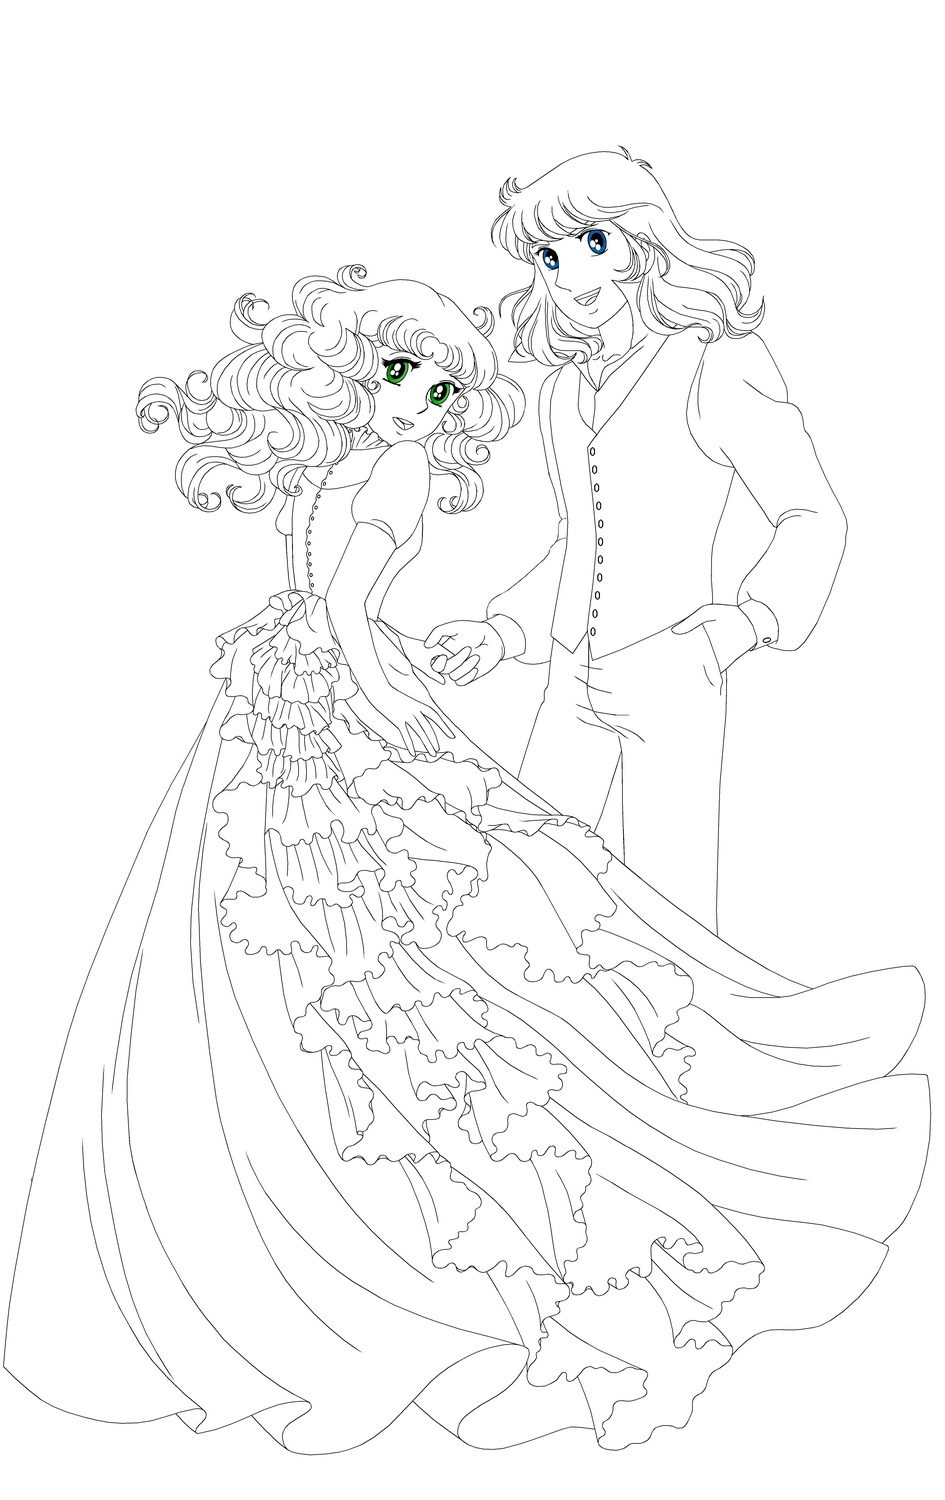 SECTION FANART COLORIAGE ! Candy_11